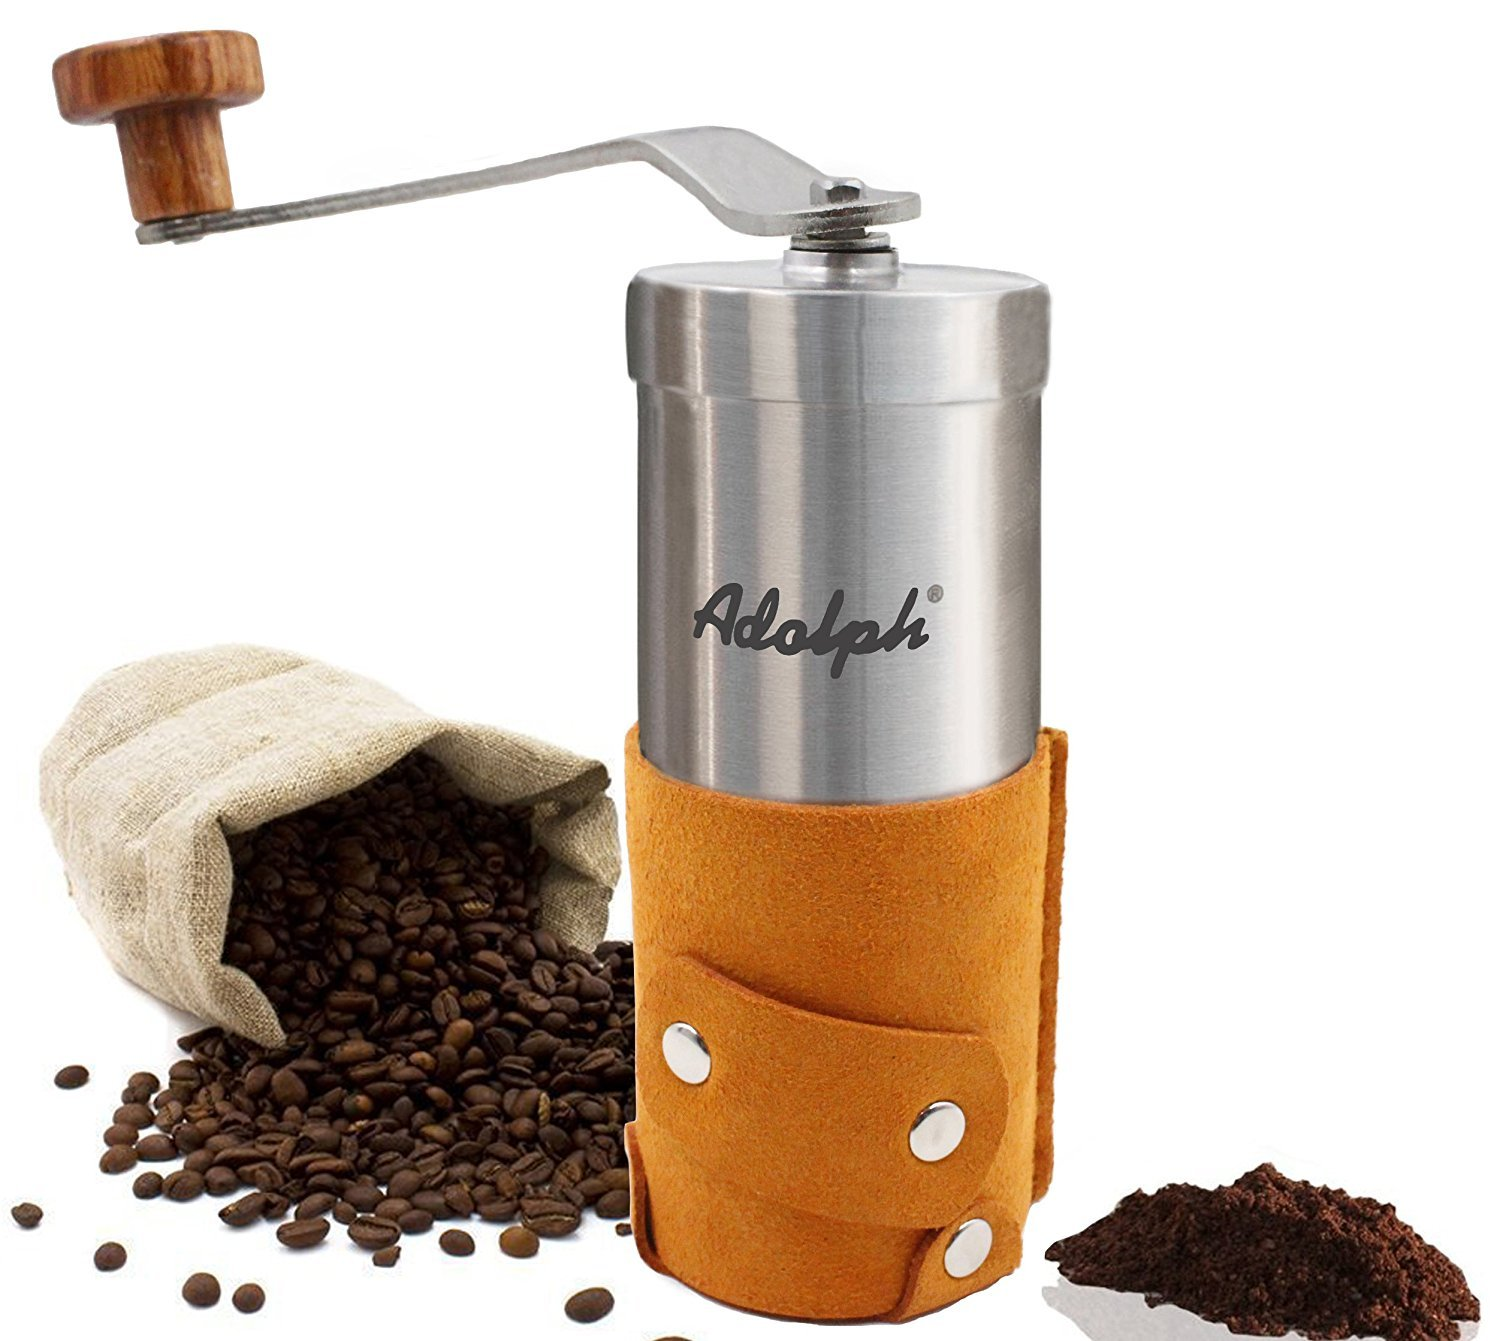 Adolph Premium Portable Manual Coffee Grinder with Authentic Leather Wrapped - Hand Crank Coffee Mill with Adjustable Ceramic Conical Burr - Top Grade